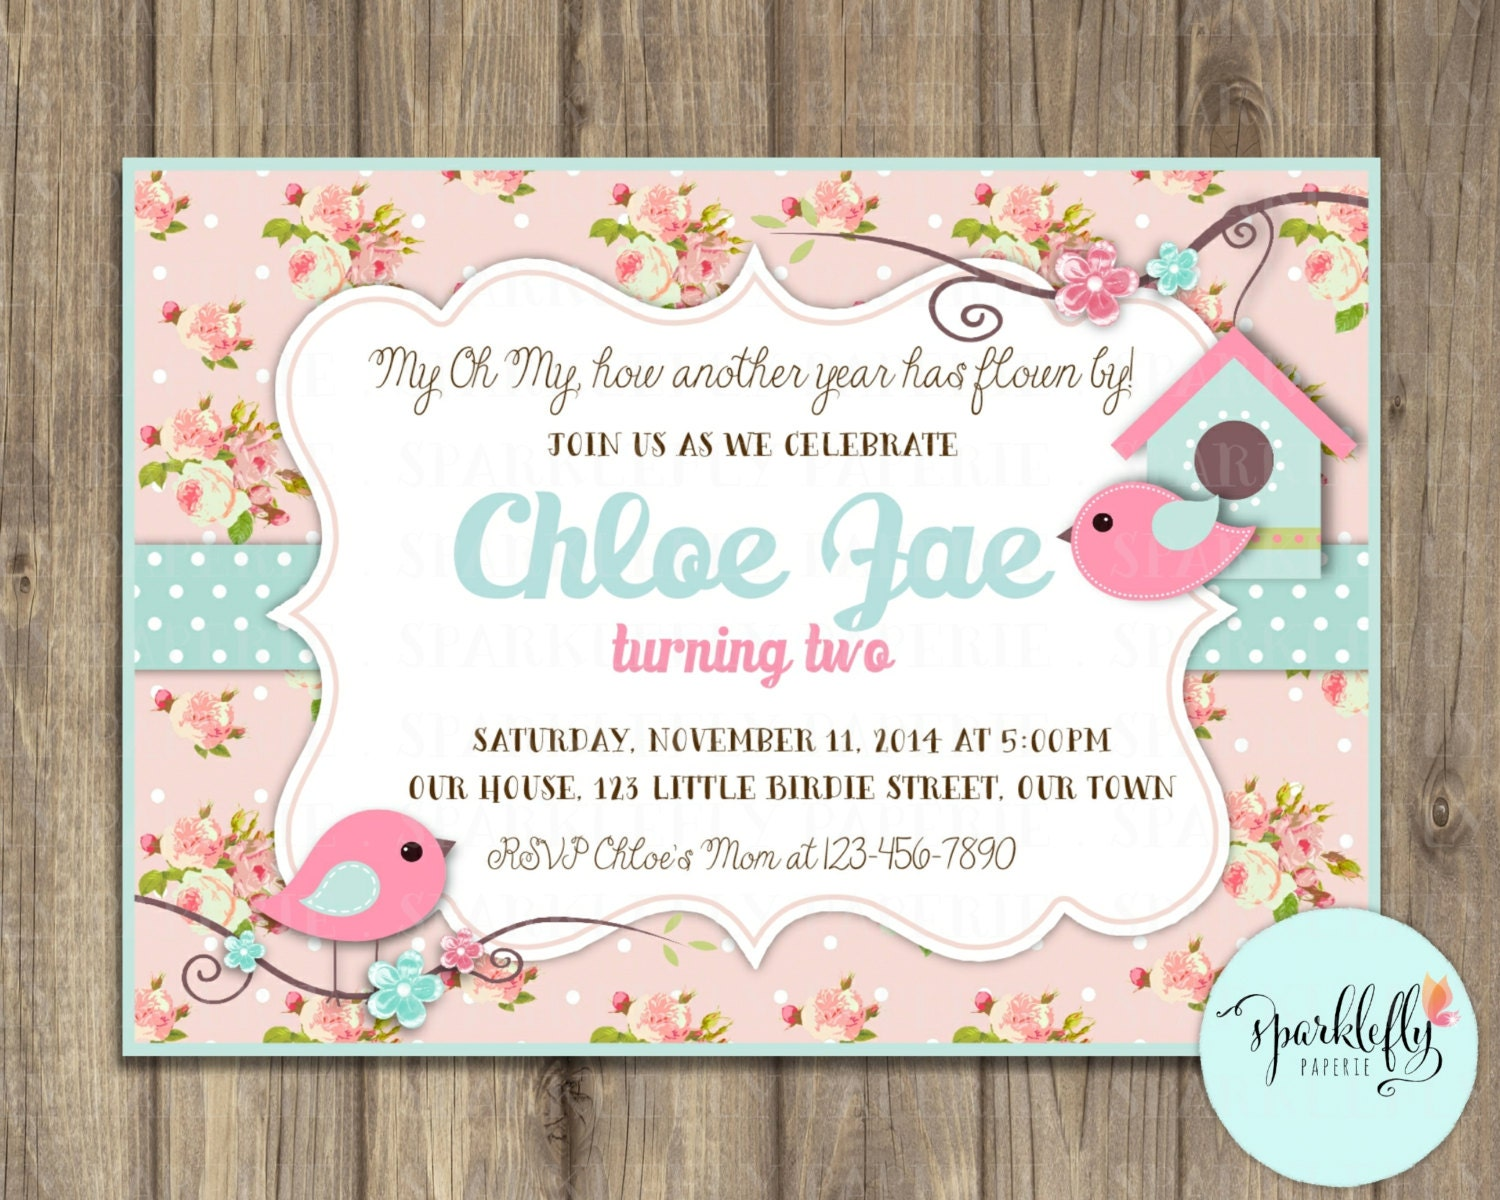 Create A Baby Shower Invitation Online with luxury invitations example